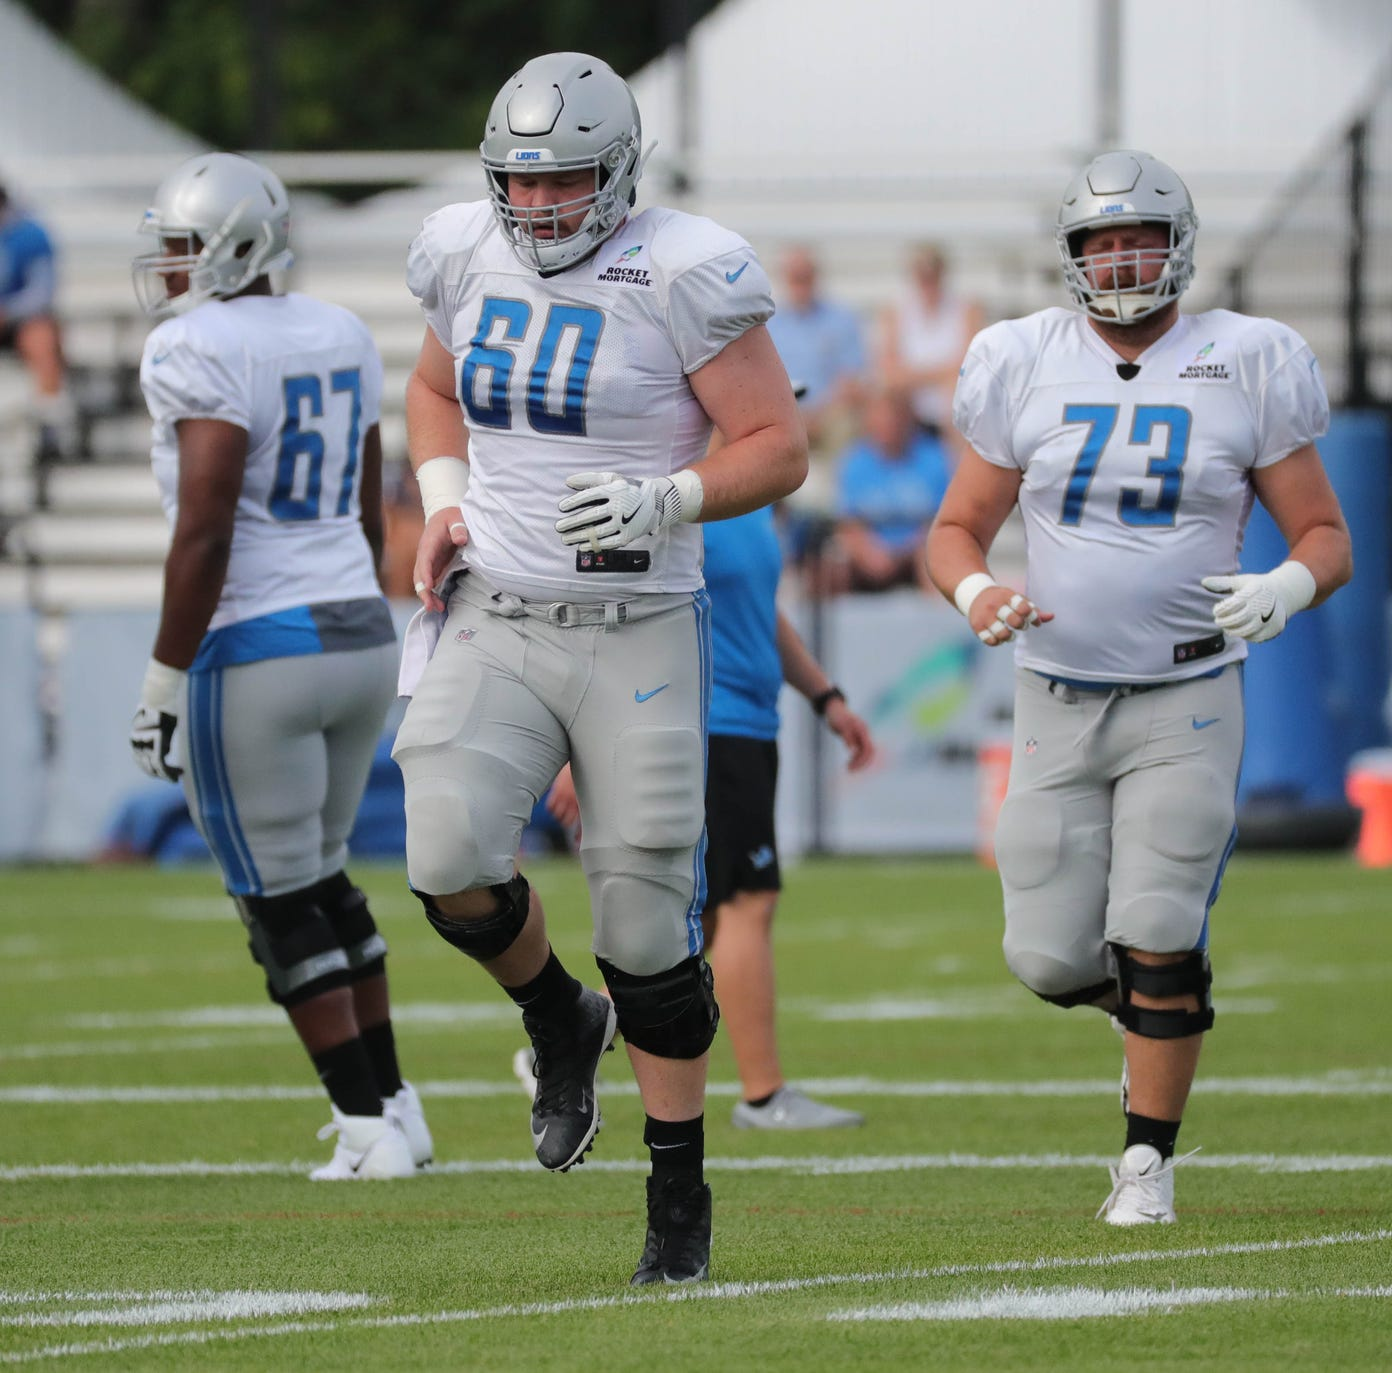 Detroit Lions' Graham Glasgow leaves practice with leg injury